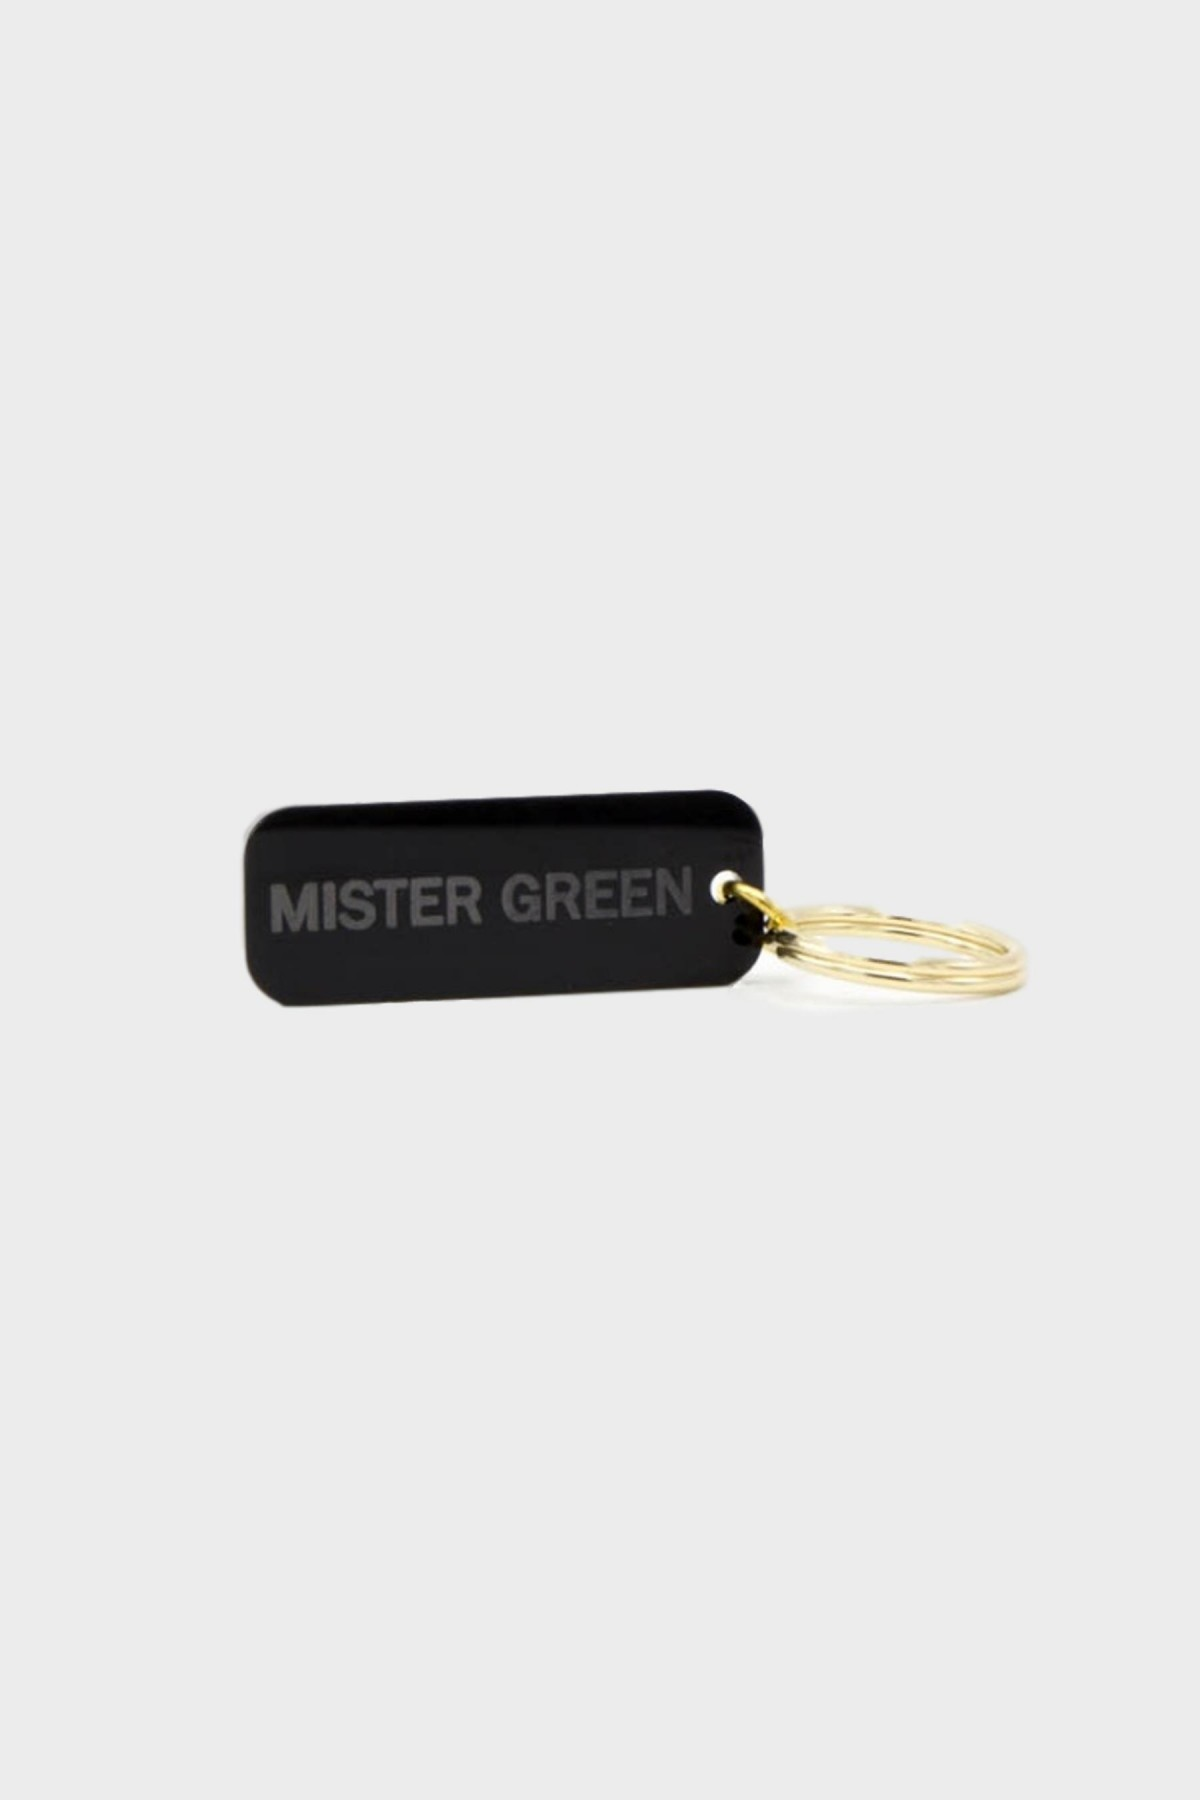 Mister Green I'm High LoL / Mister Green Key Tag in Black